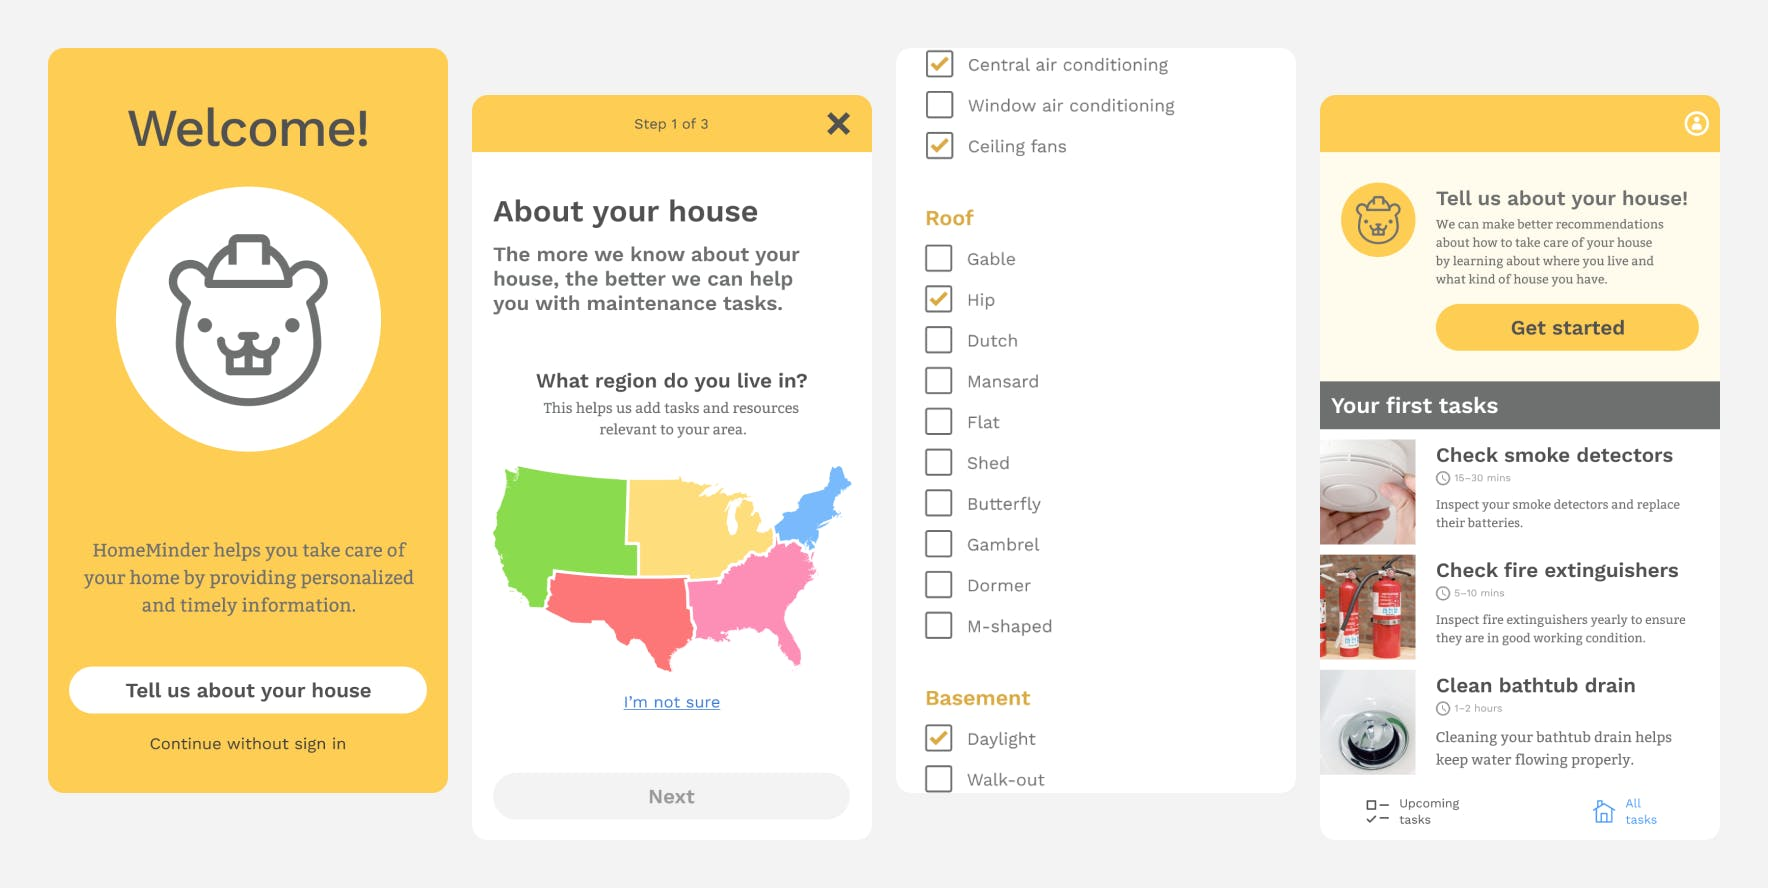 Four screens from the app prototype; a welcome screen, part of a form asking what region of the US you live in, a checklist of house amenities,a list of tasks about your house